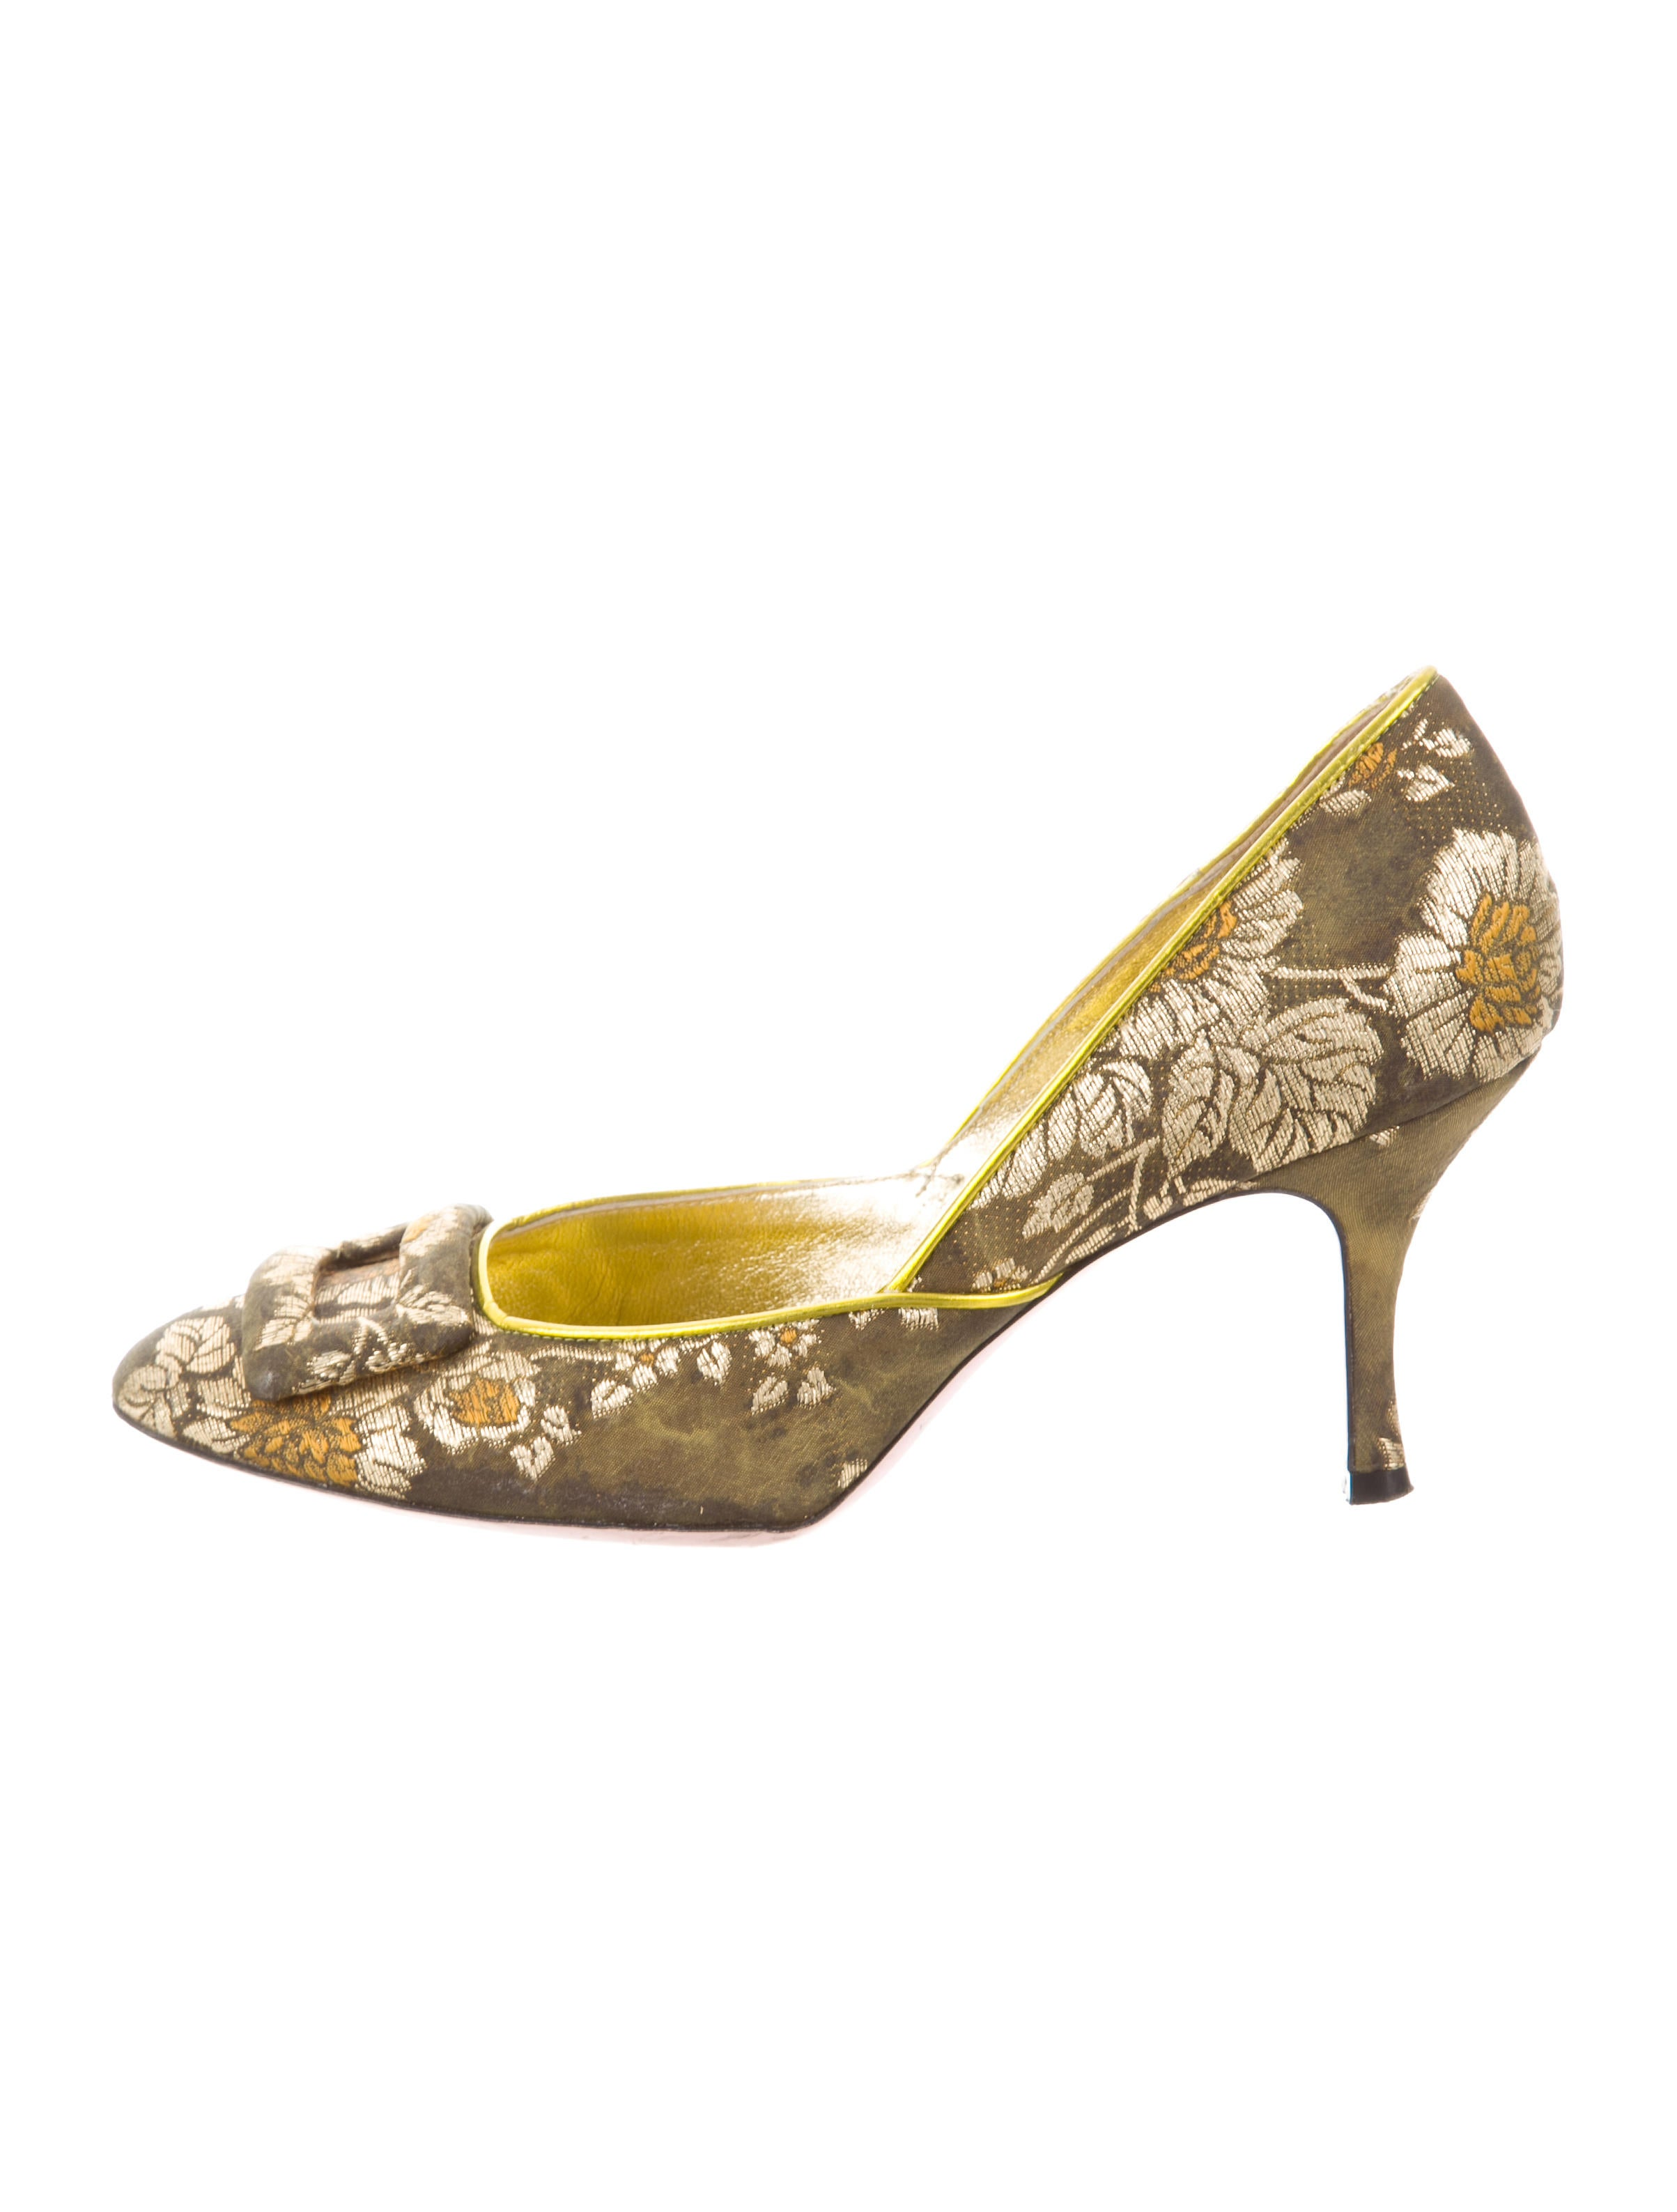 for cheap sale online Christian Lacroix Pointed-Toe Jacquard Pumps perfect fashionable online free shipping cheap online zOjTwB